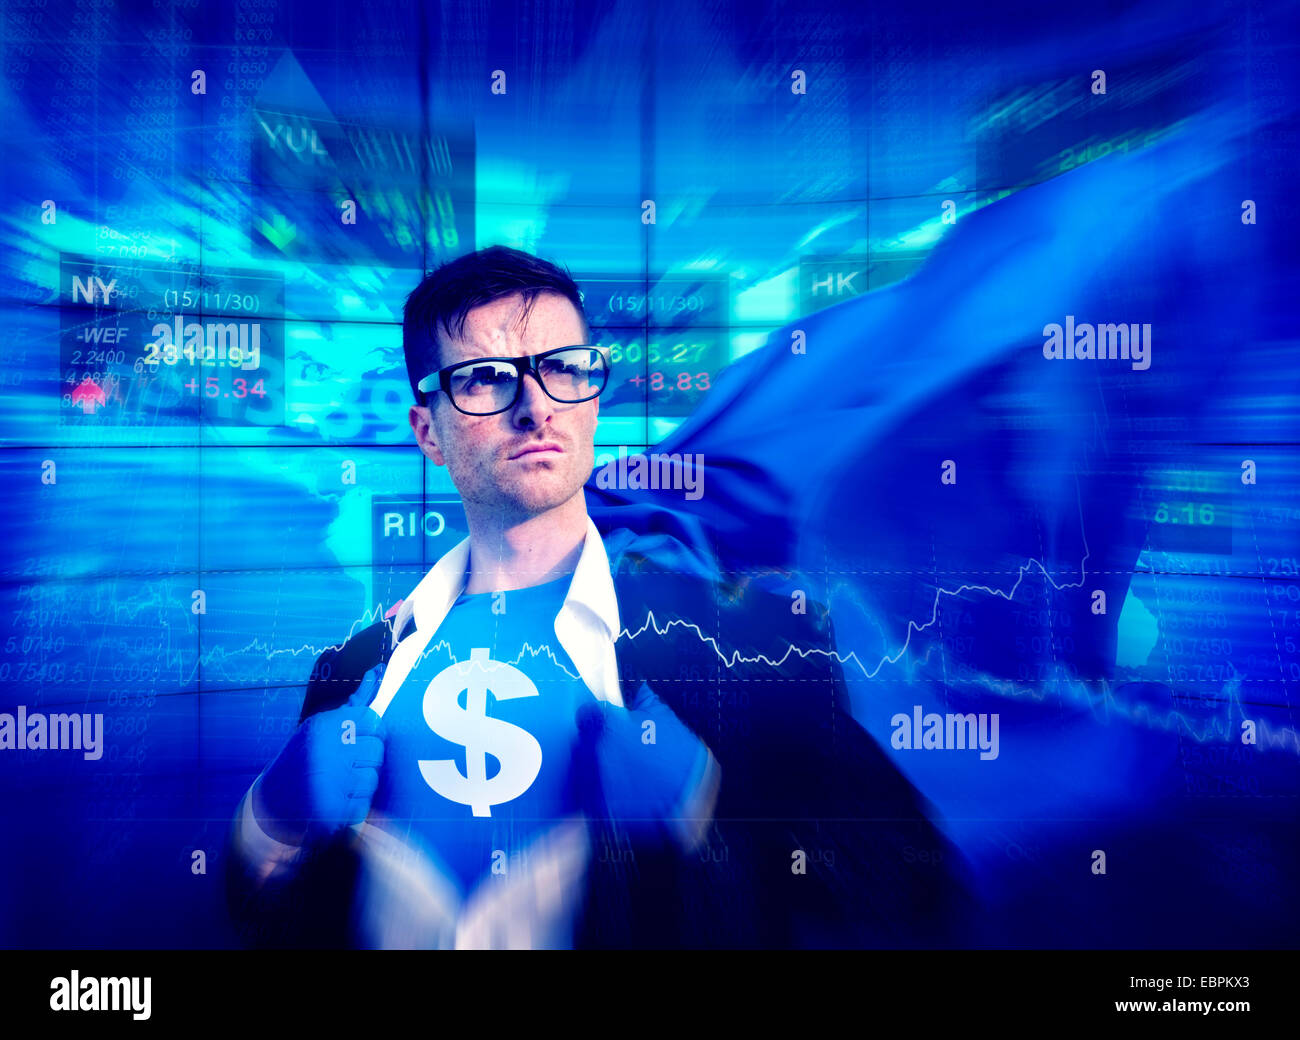 Dollar Sign Strong Superhero Success Professional Empowerment Stock Concept - Stock Image